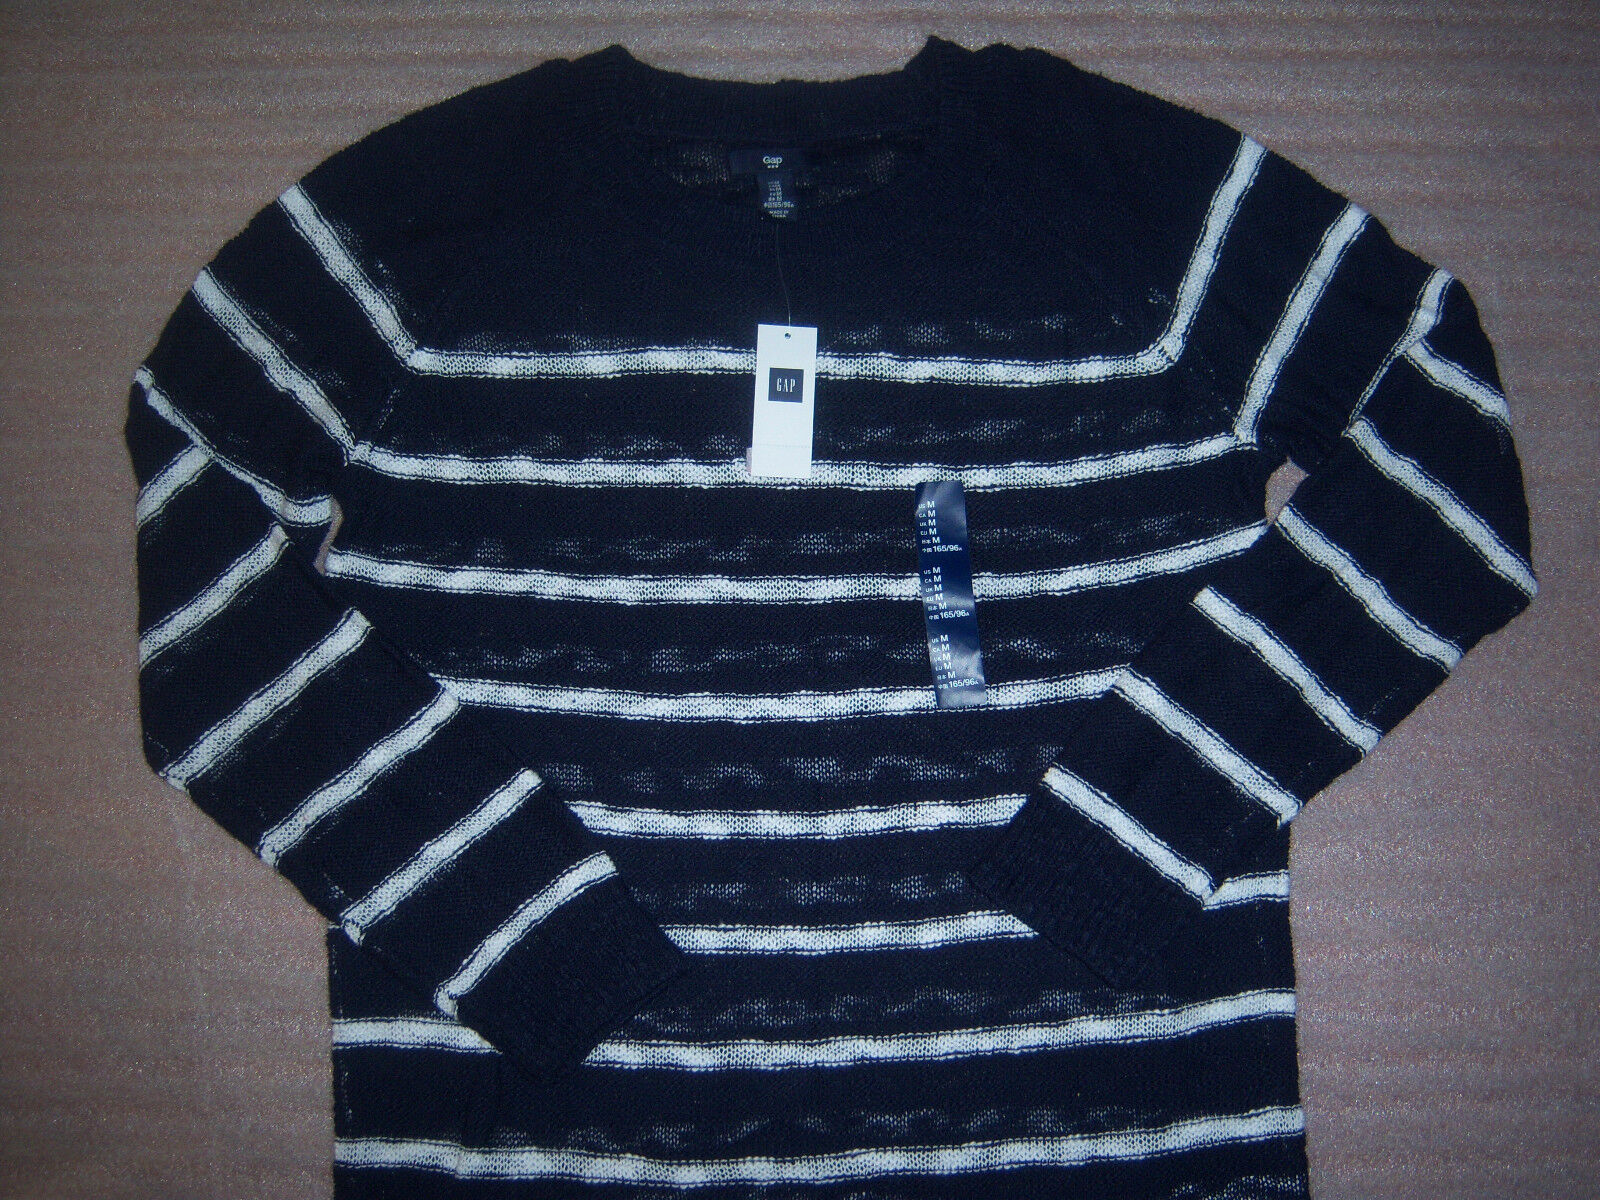 Gap Brand Dark bluee and White Striped Womens Sweater Size M NEW